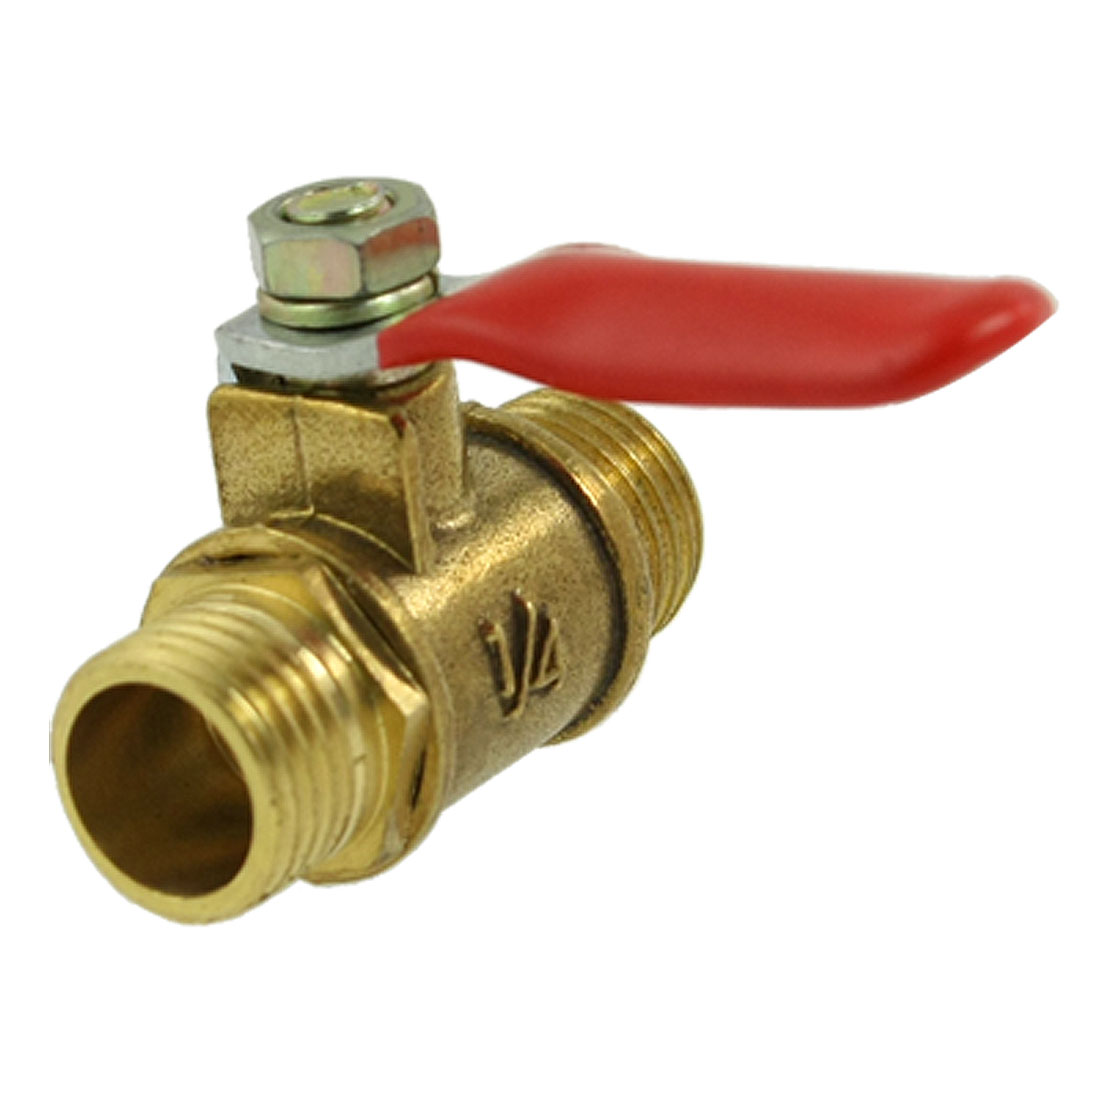 "Plastic Coated Handle 1/4"" Male Thread Pneumatic Ball Valve"